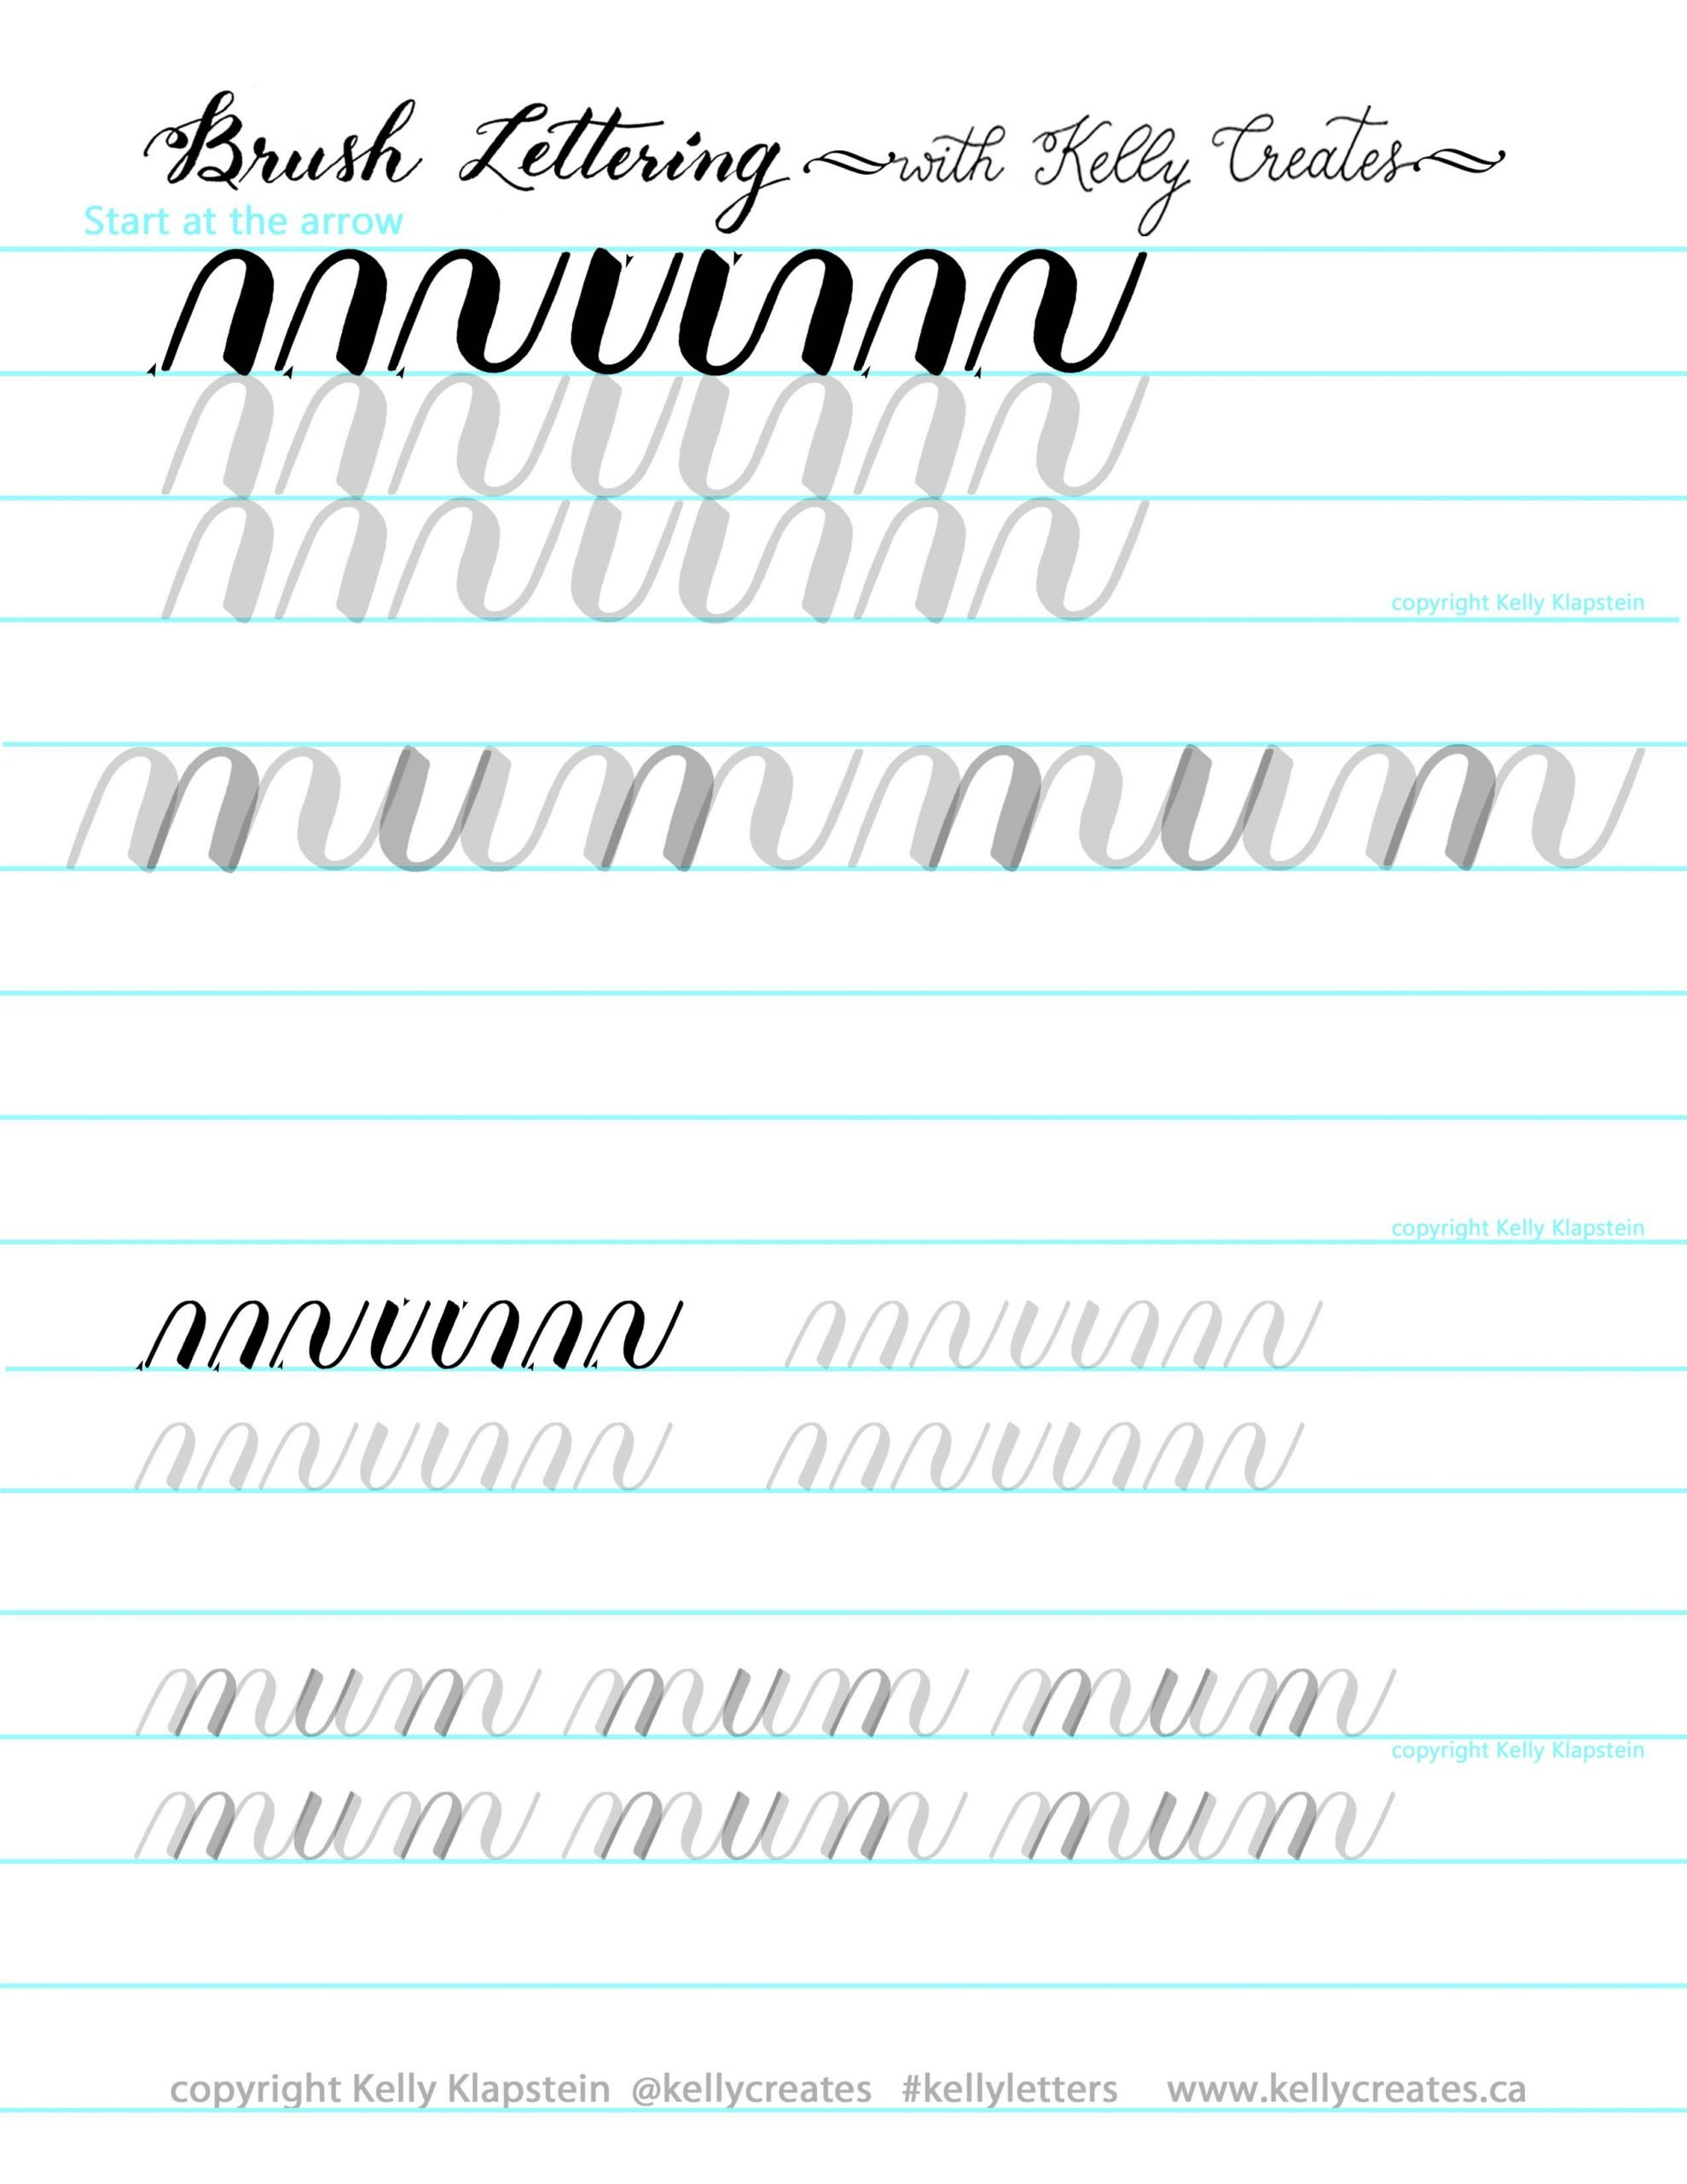 Learn Calligraphy Worksheets May Newsletter and Free Worksheet – Kelly Creates